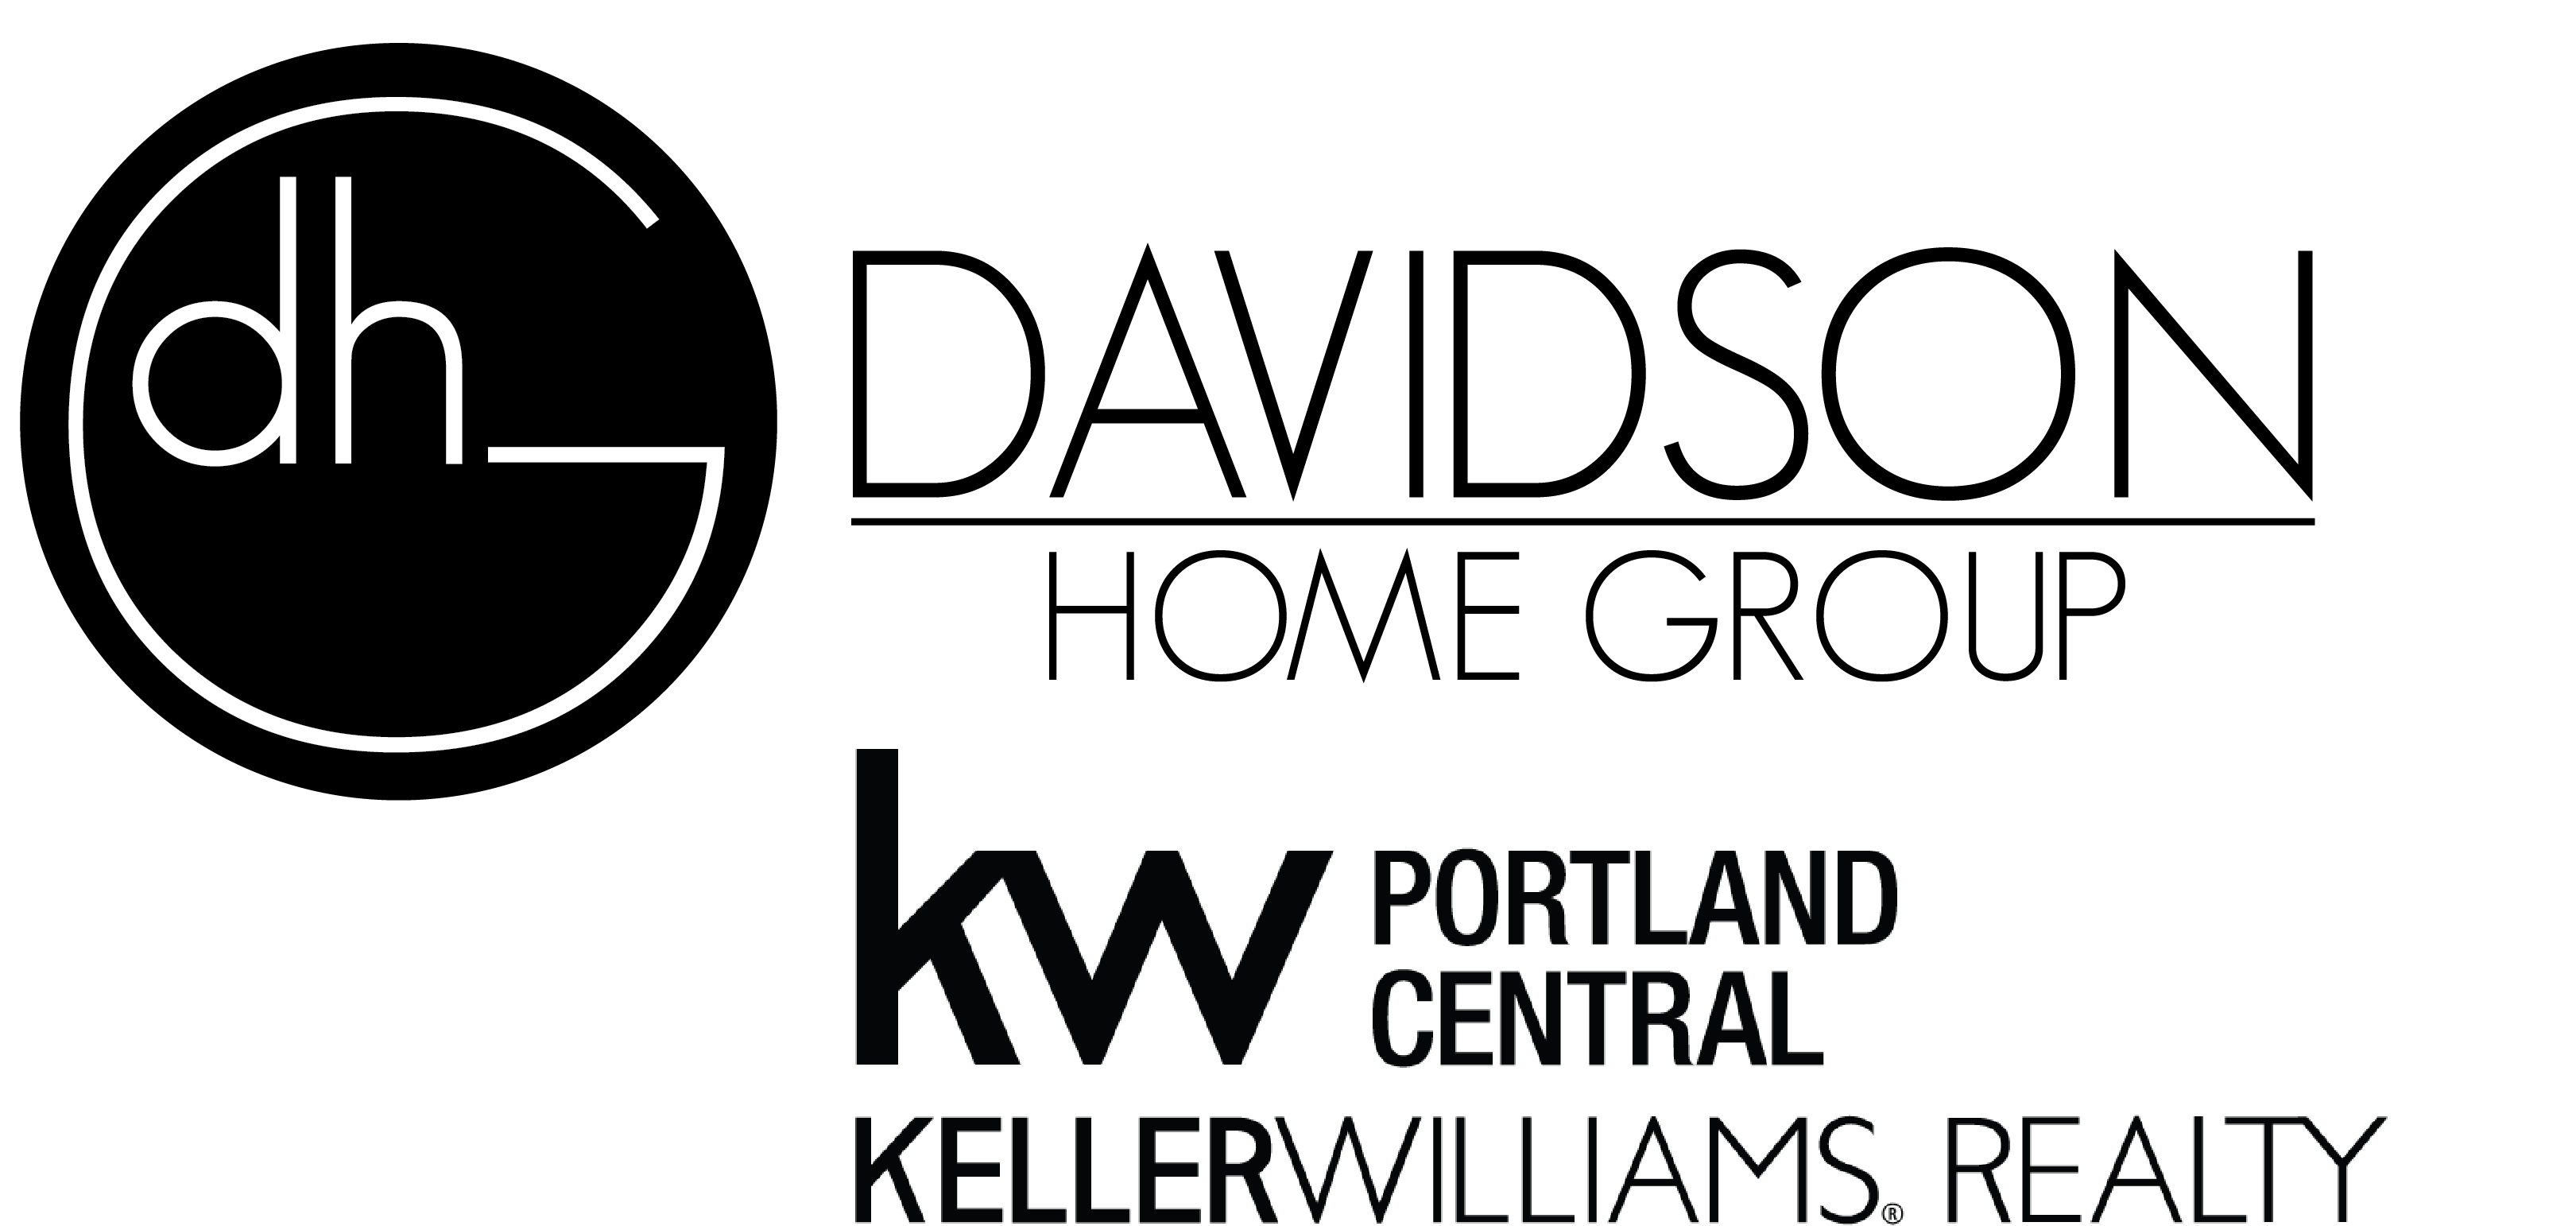 Davidson Home Group